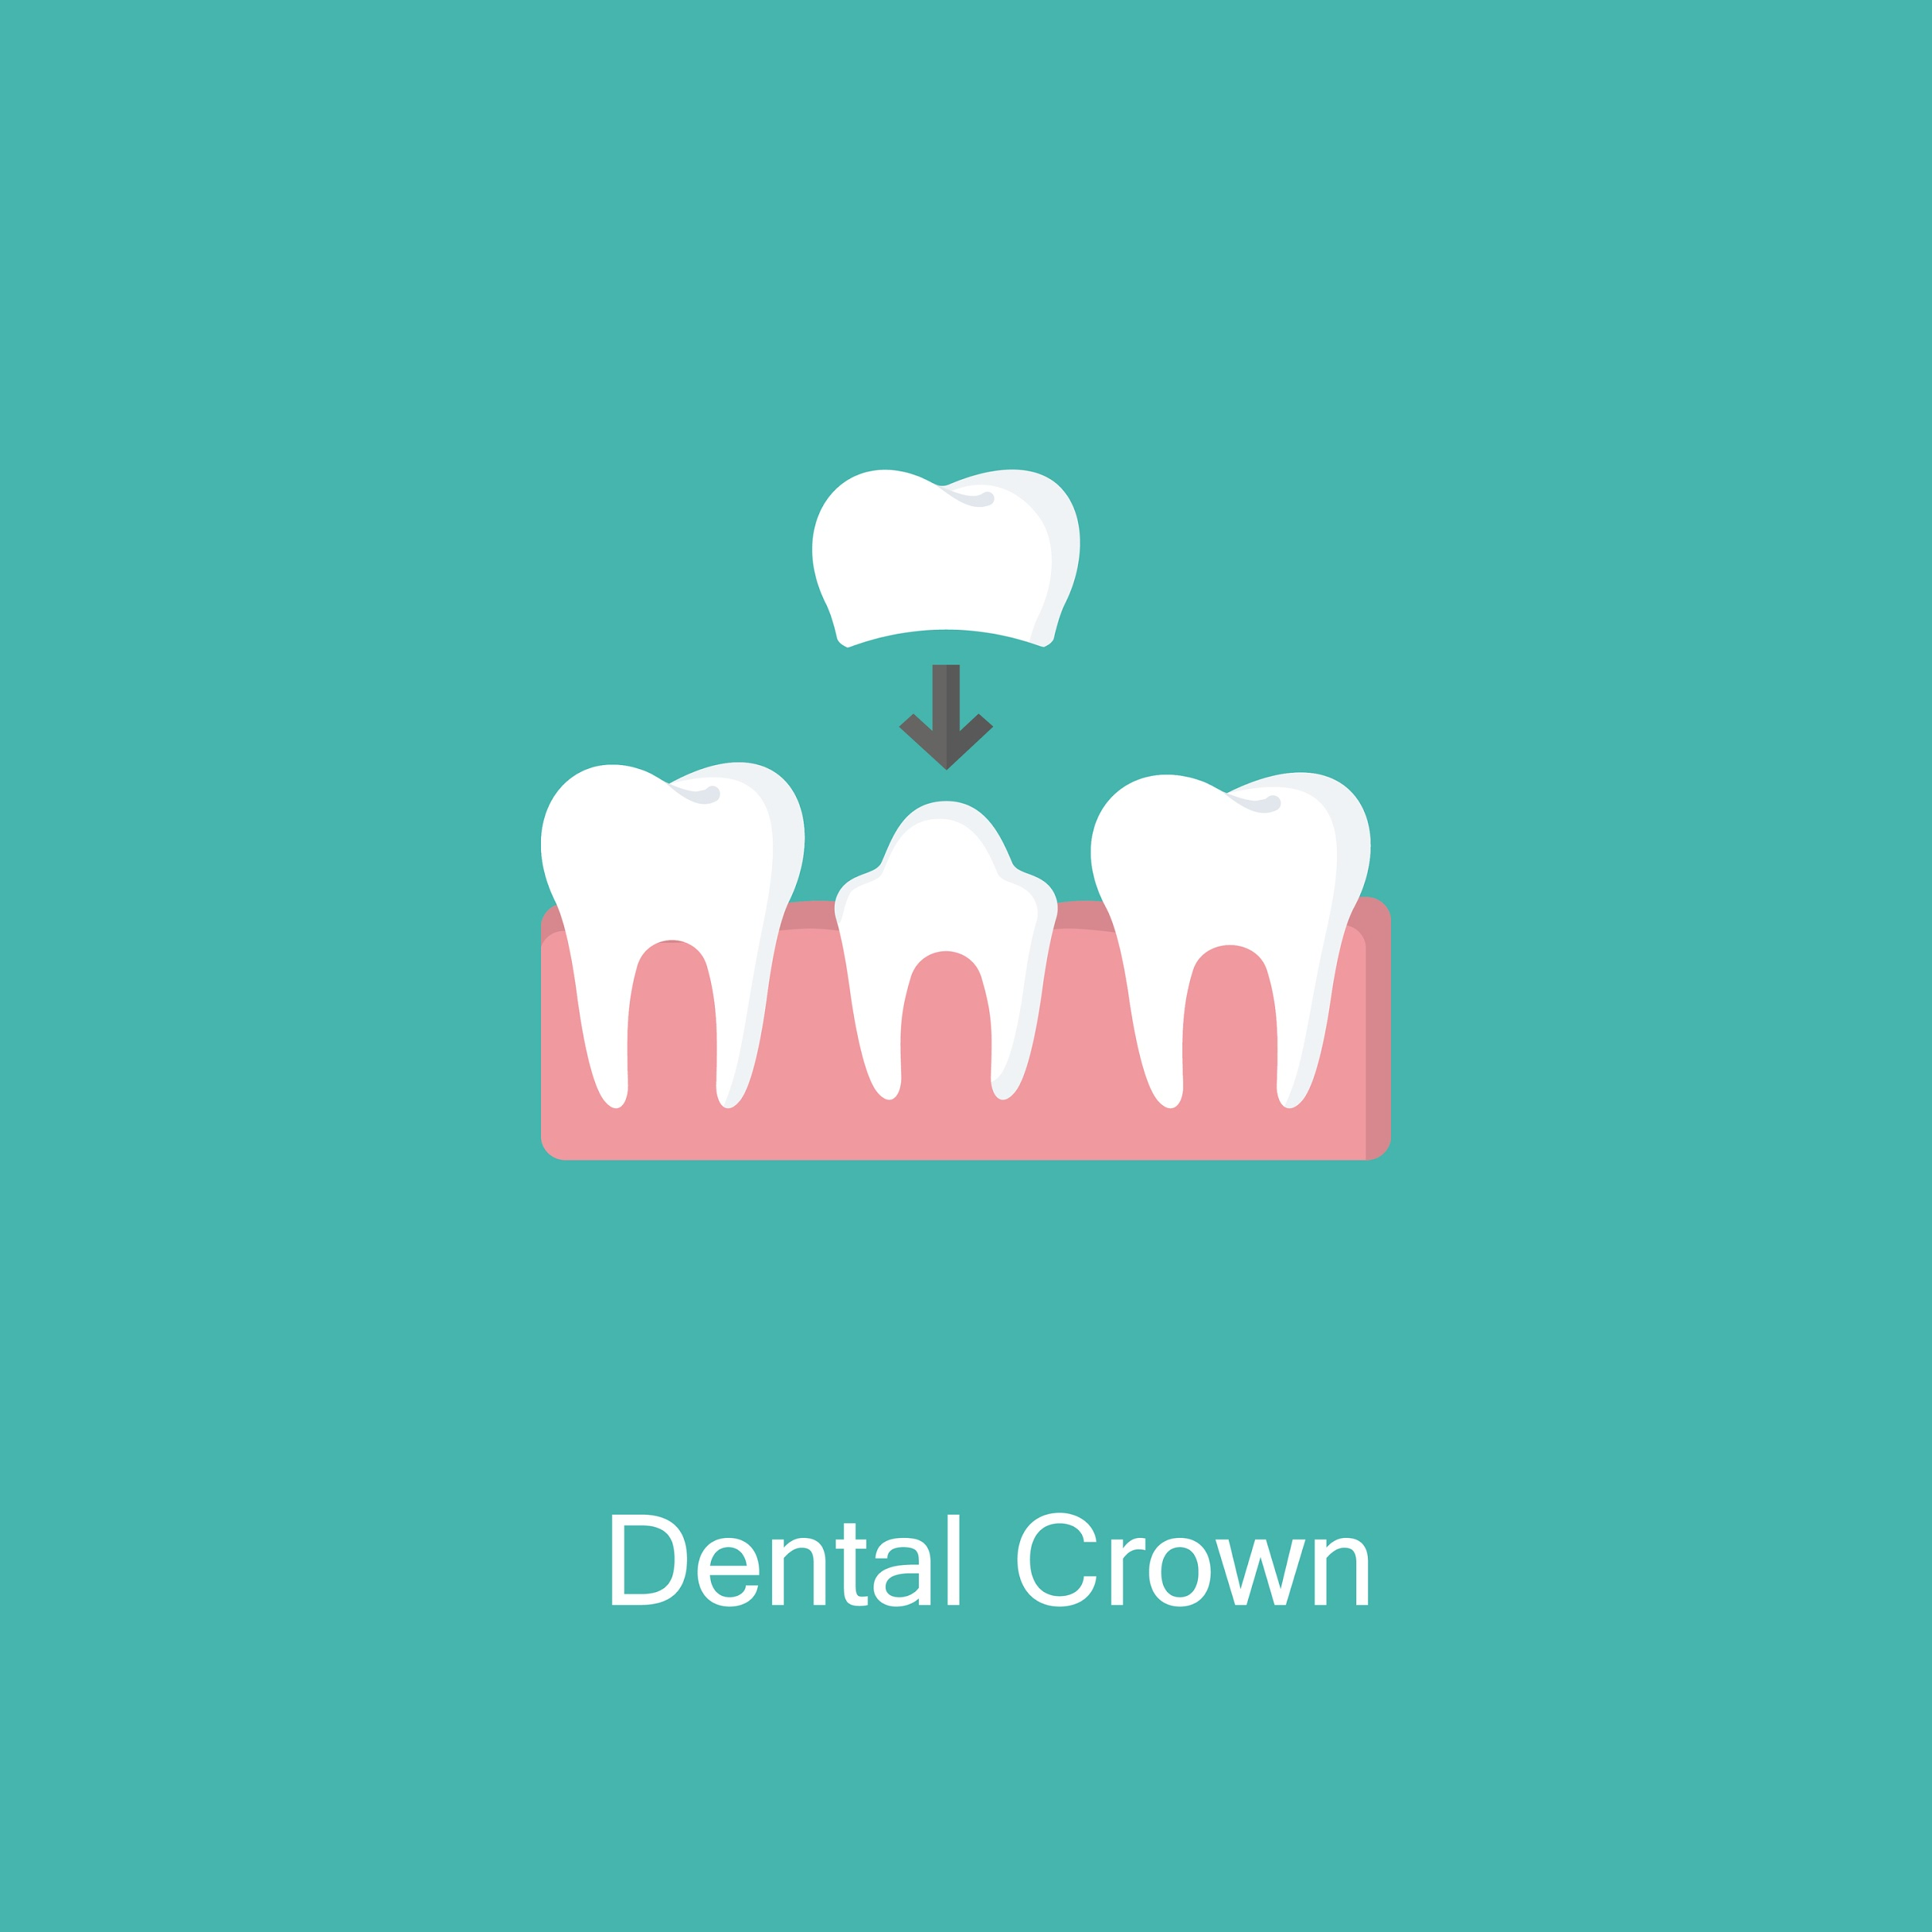 c0993a7b069 Illustration of dental crown being placed on a damaged tooth